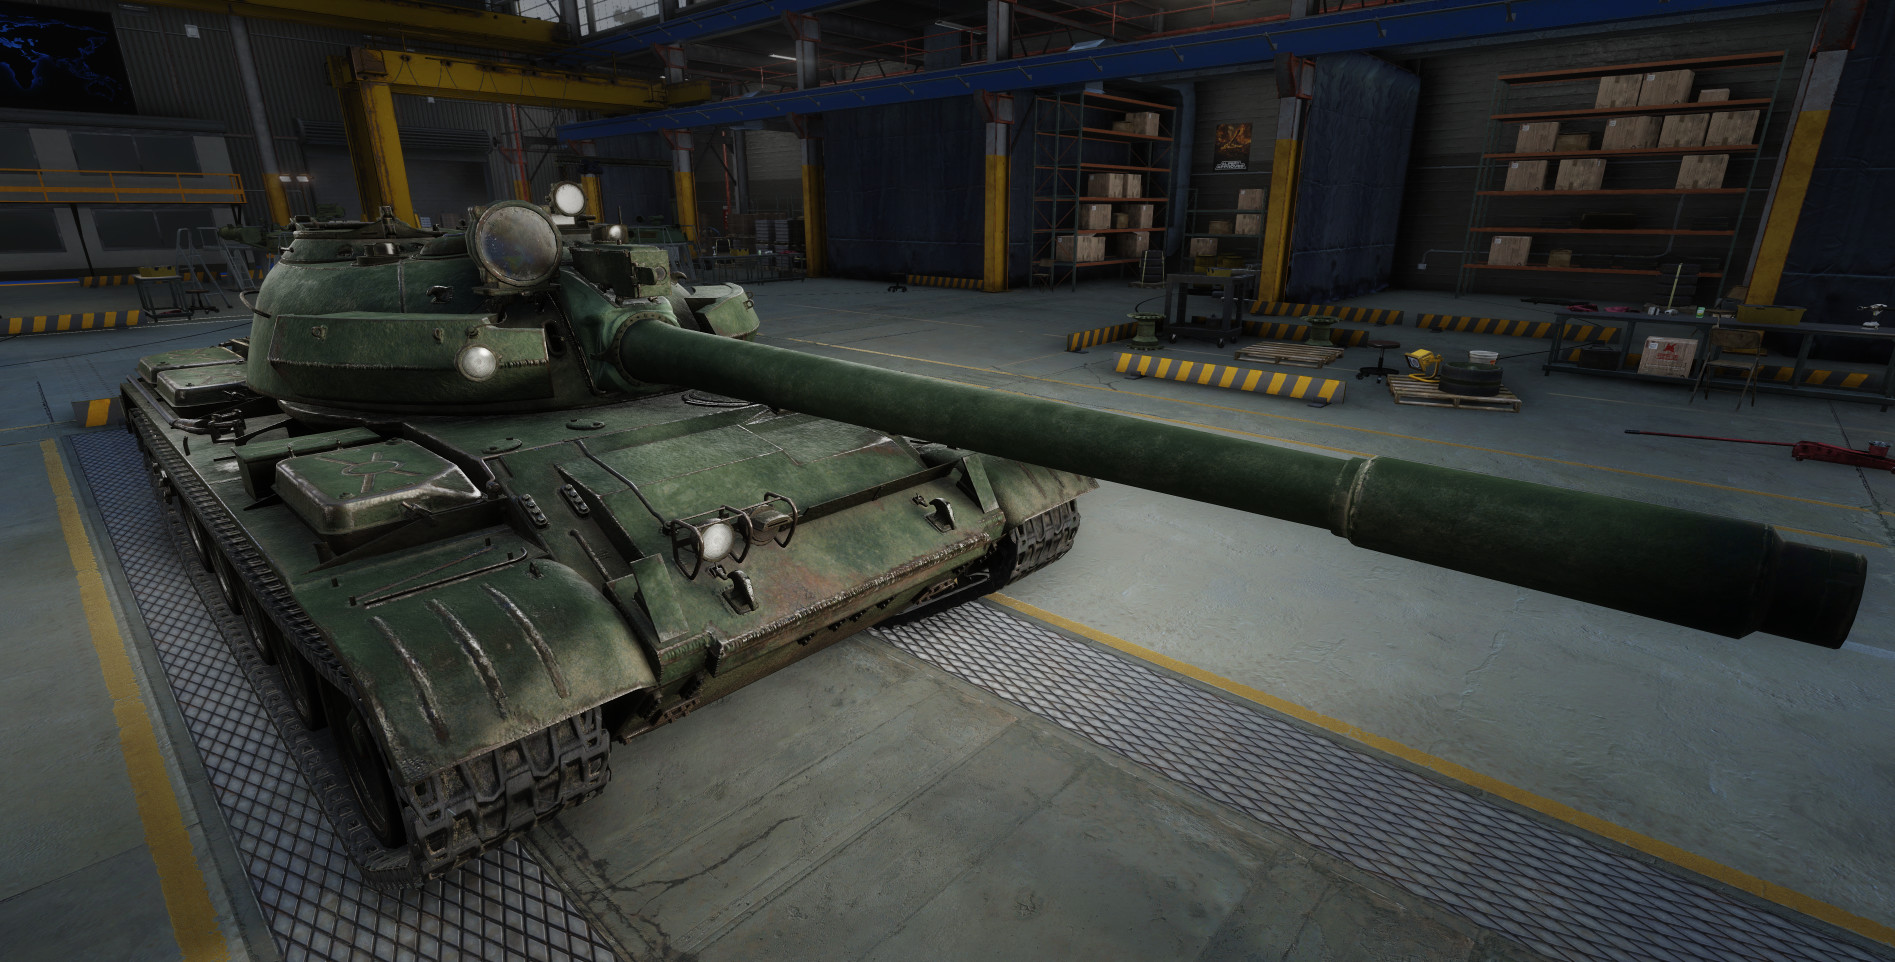 Brx boyles t 55 variant screens 01